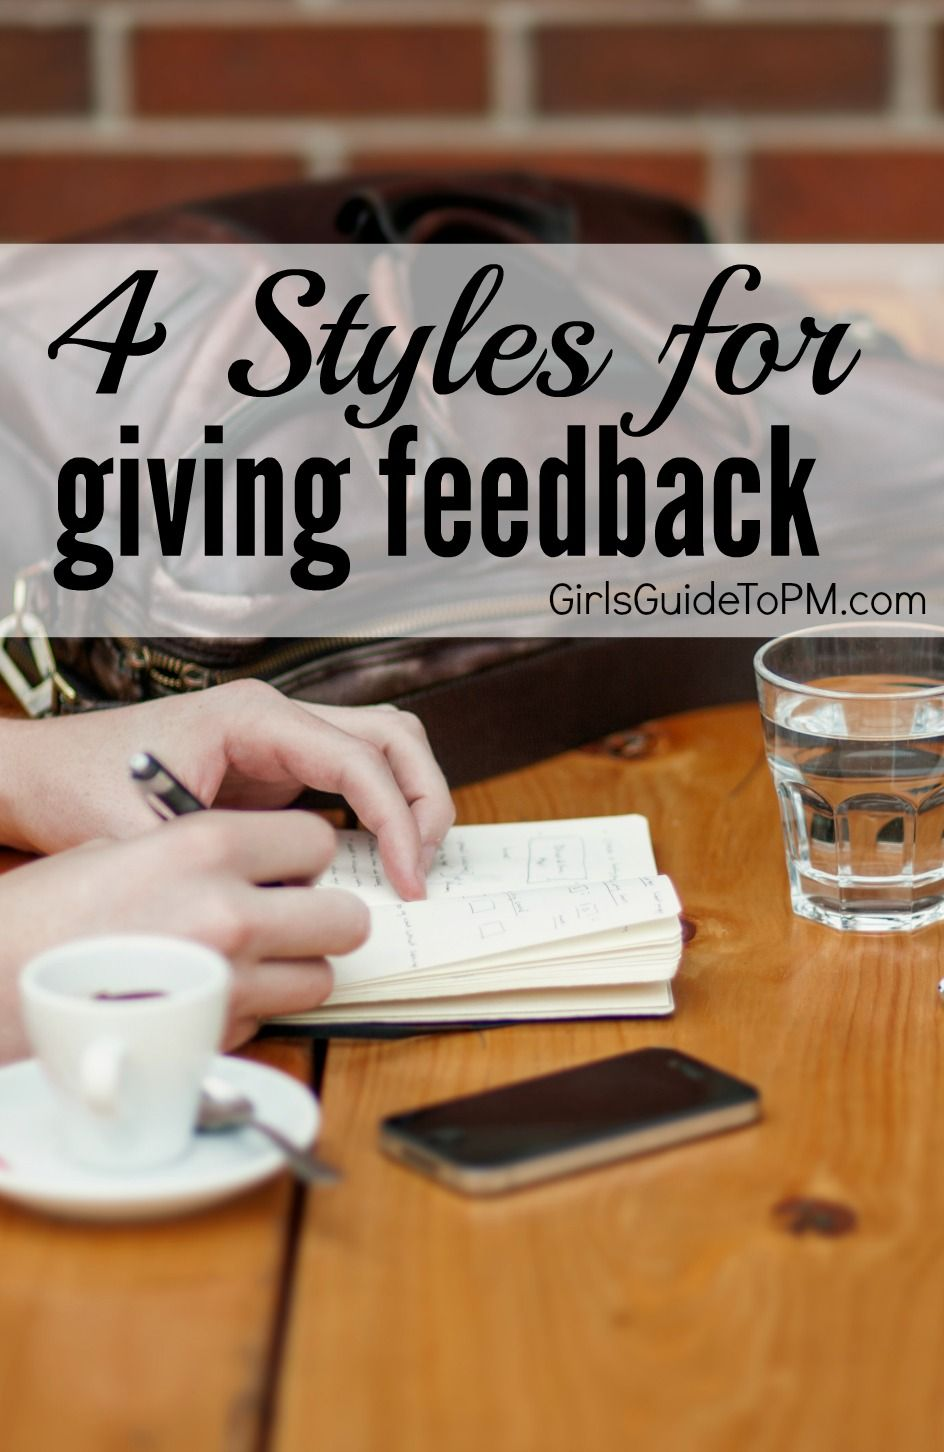 4 different management styles for giving feedback to colleagues - tips for making it easier to work collaboratively with your team.